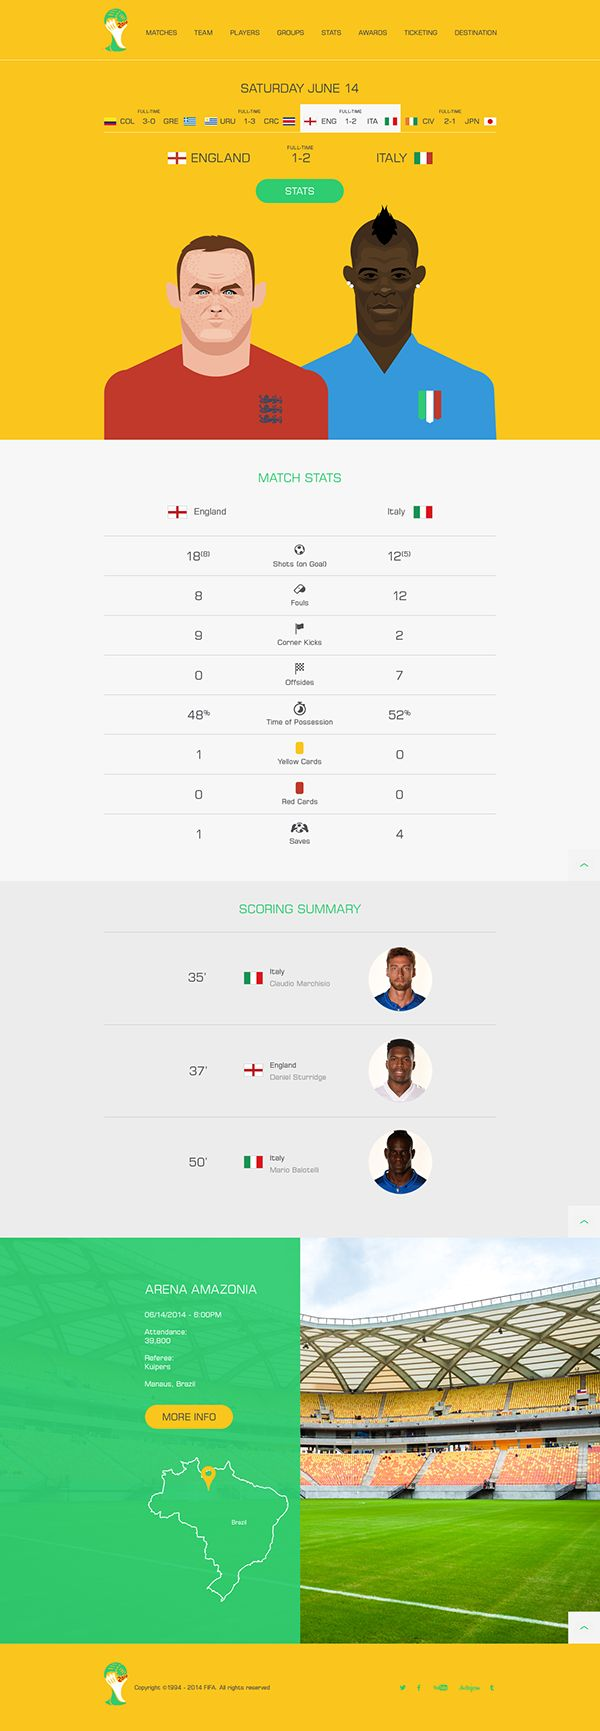 FIFA World Cup website - Reimagined on Behance